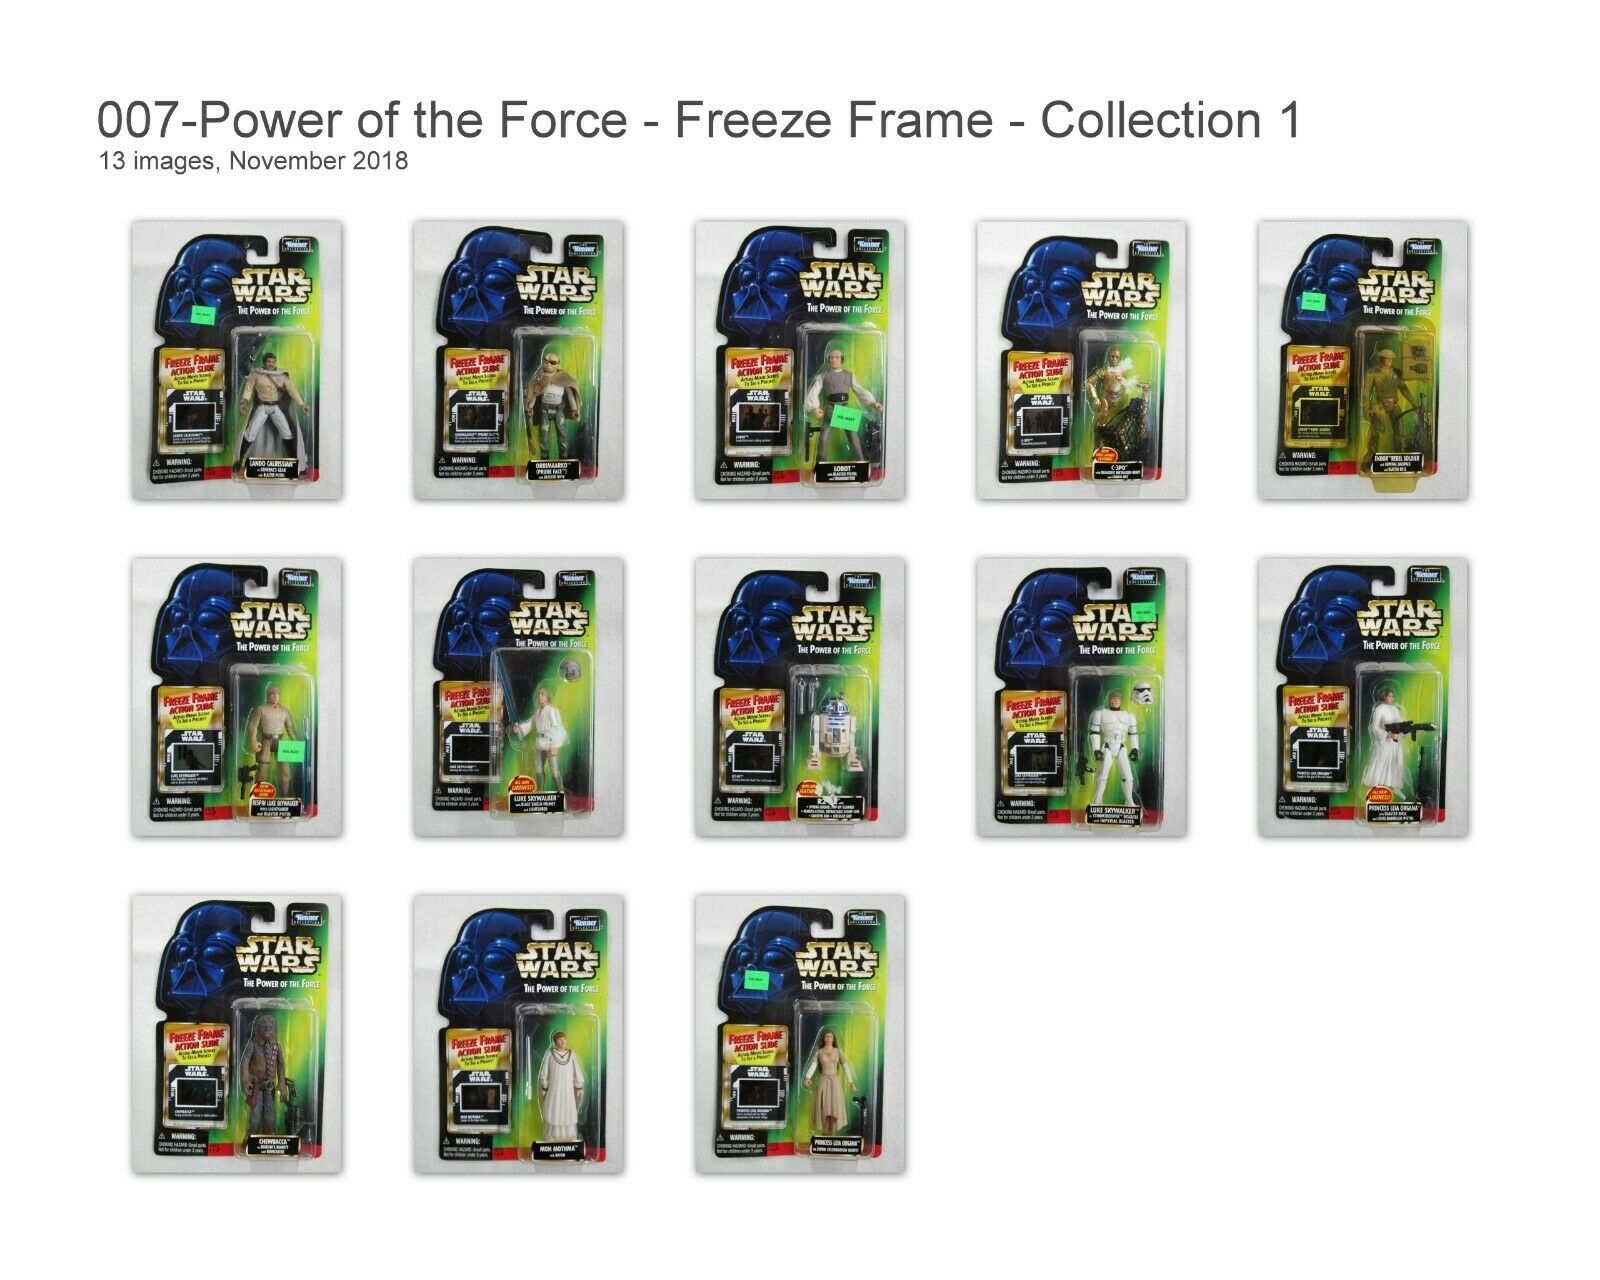 Star Wars Power of the the the Force - Freeze Frame Kenner Collection 1 - 13 Figures 29064e